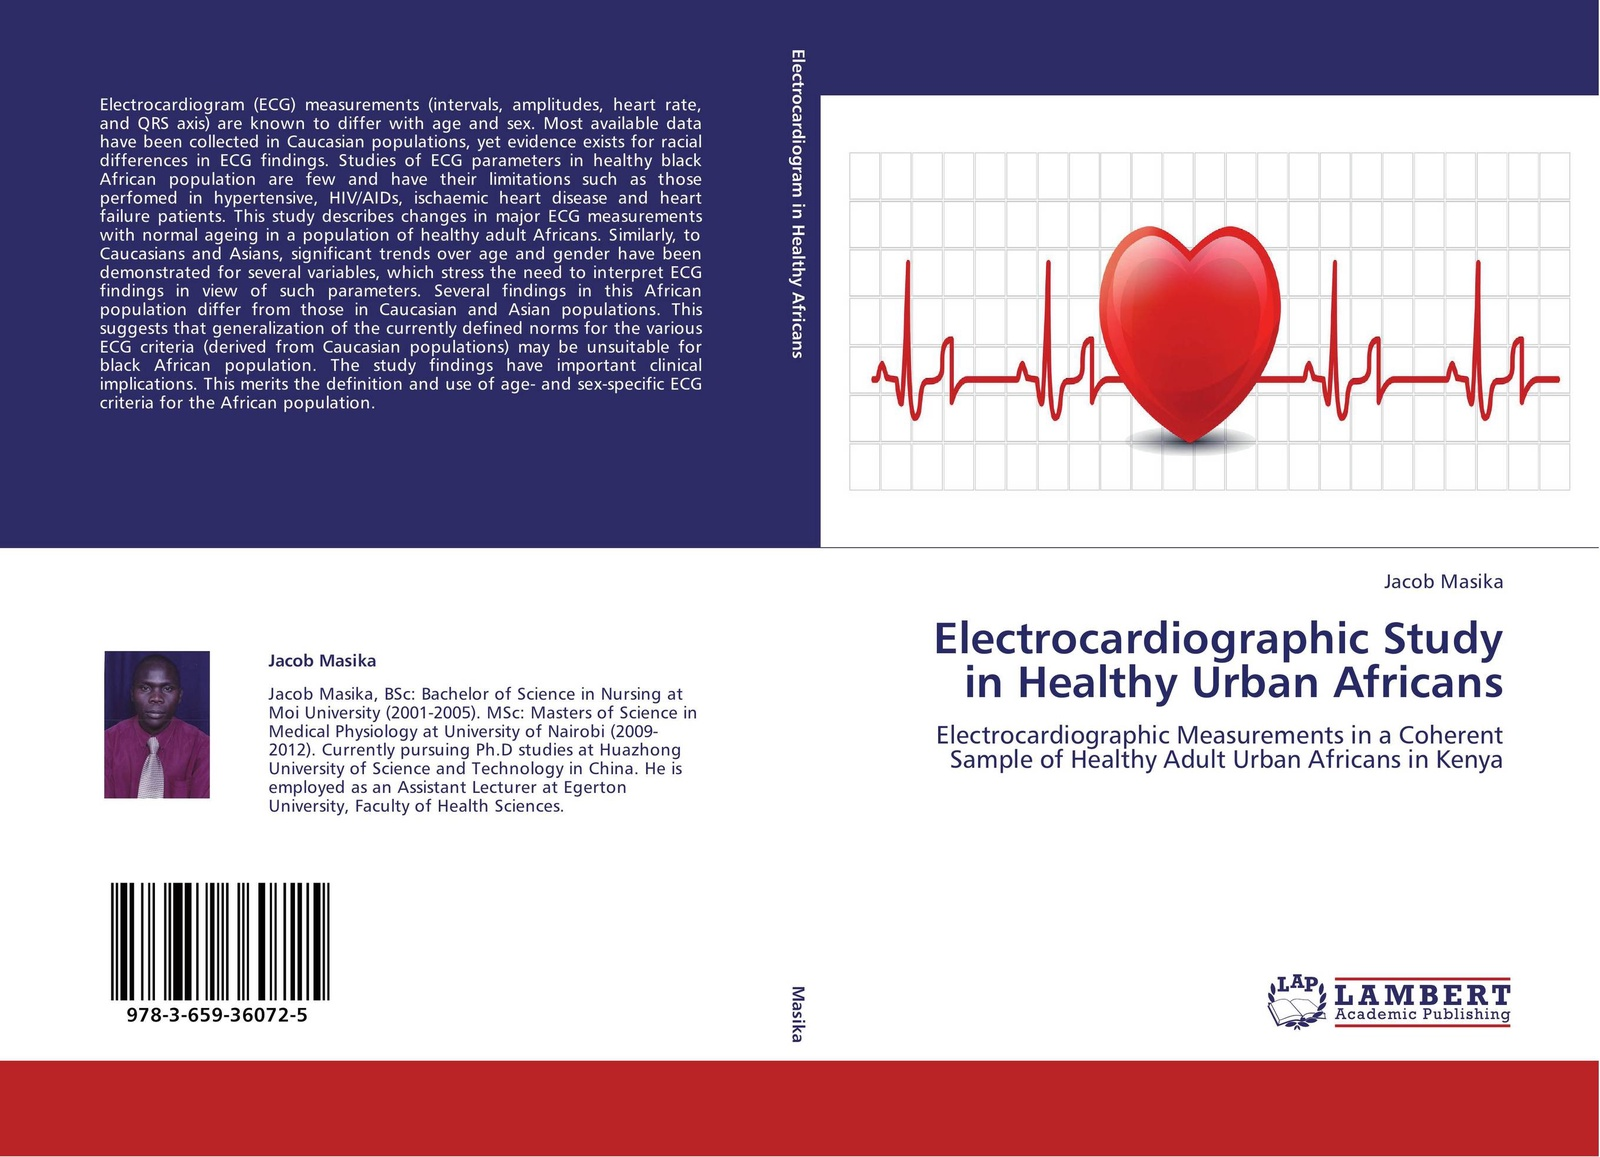 Jacob Masika Electrocardiographic Study in Healthy Urban Africans нордавинд ecg dongle кардиофлешка